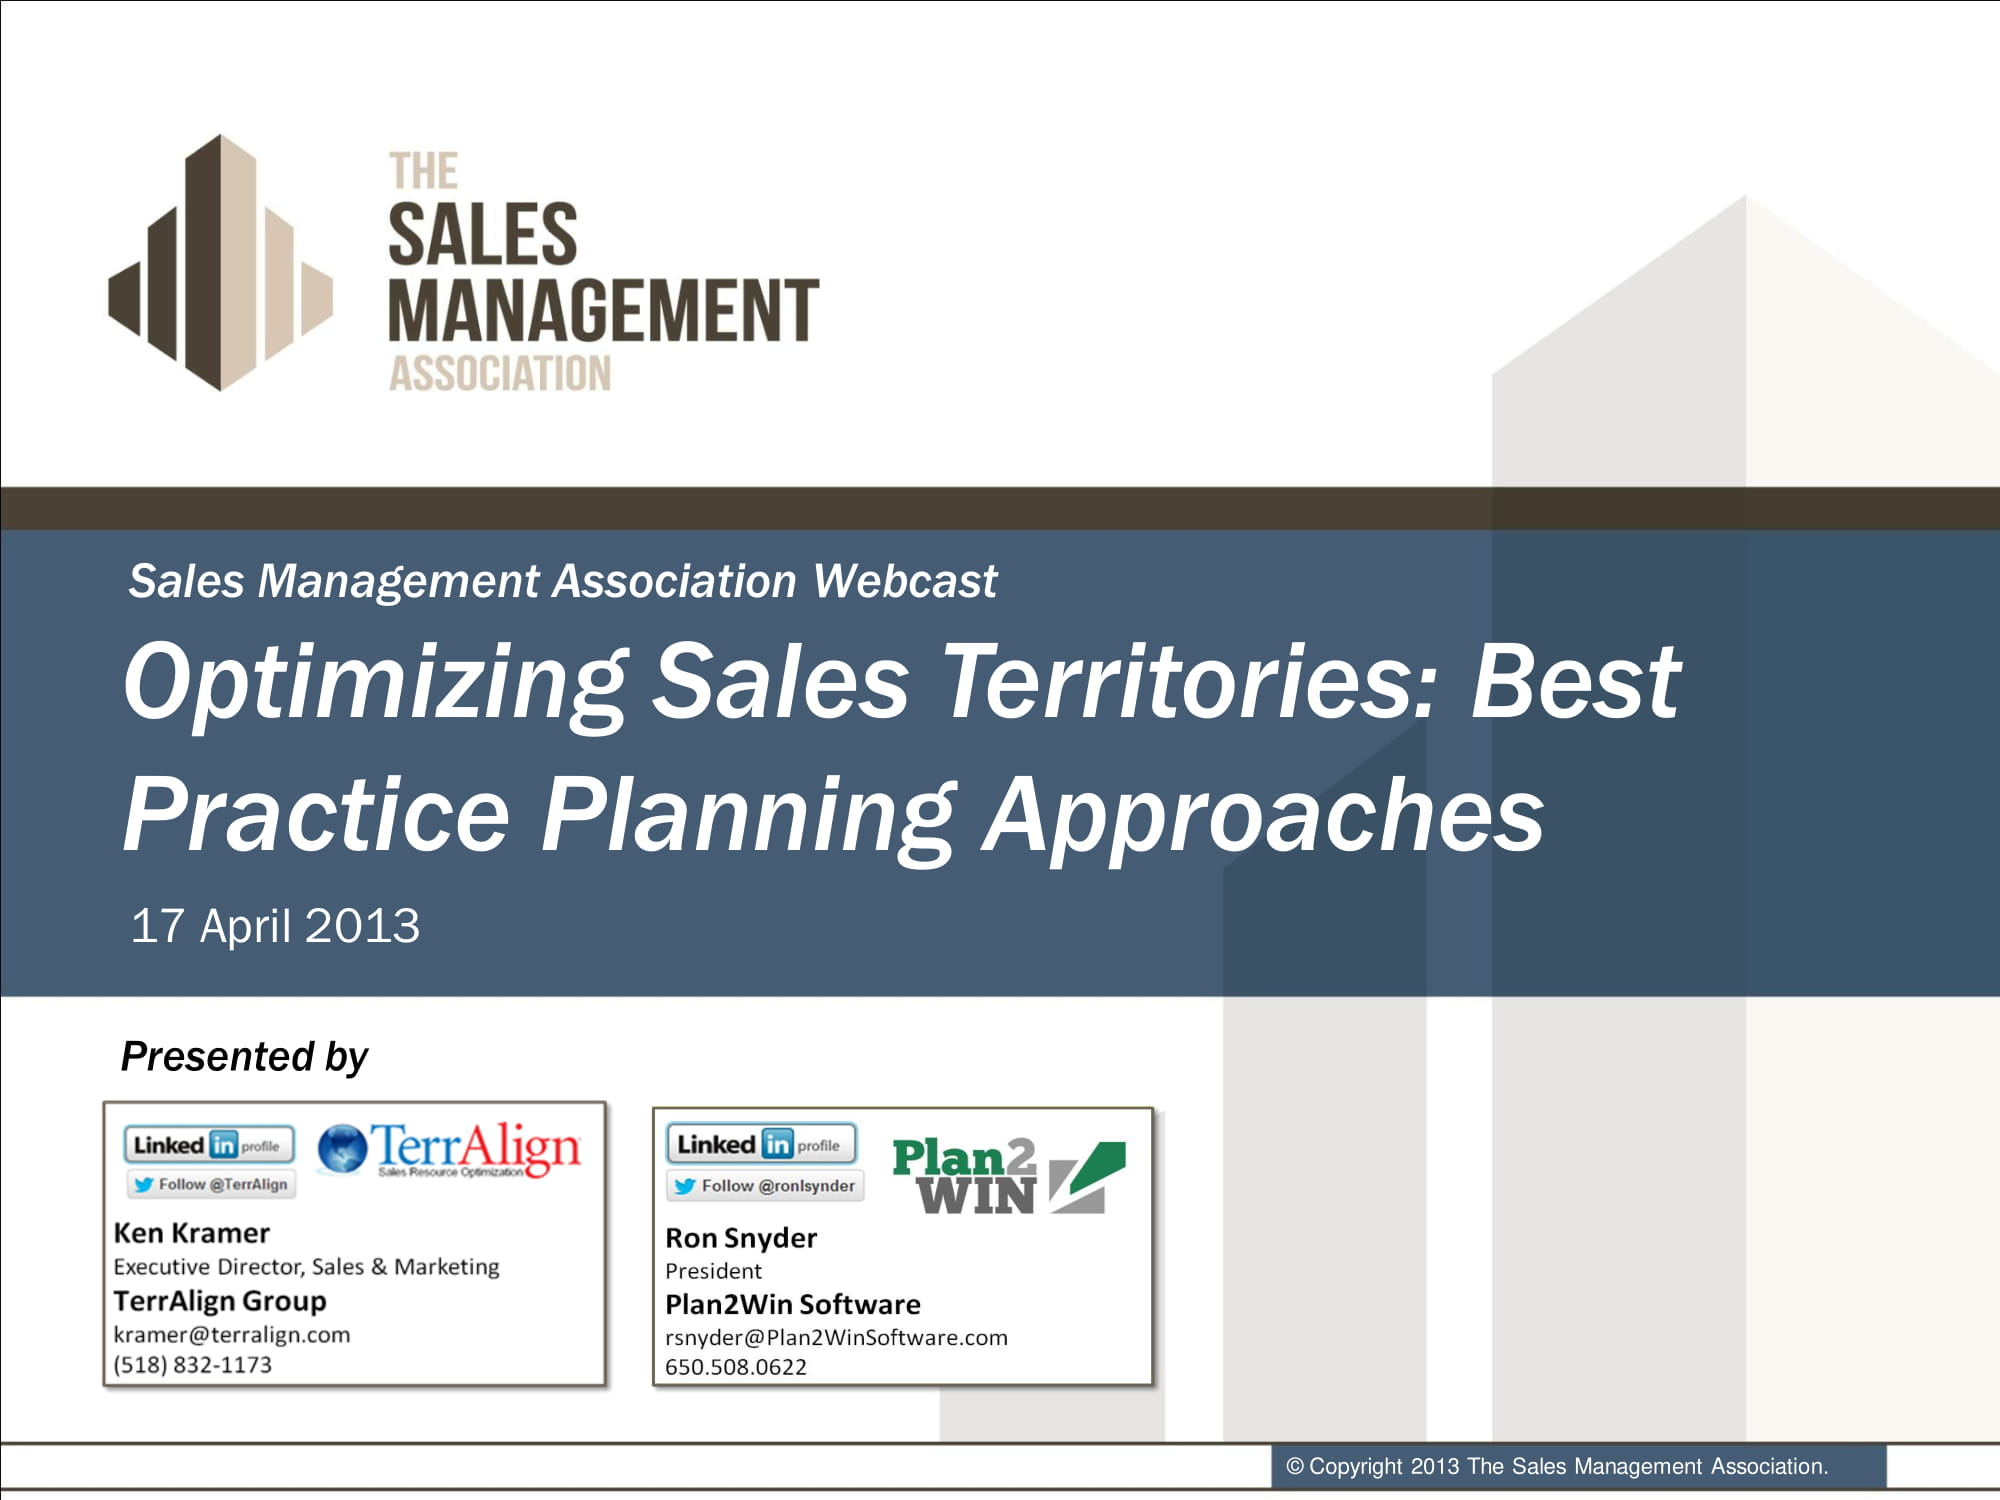 optimizing sales territories best practice planning approach example 011